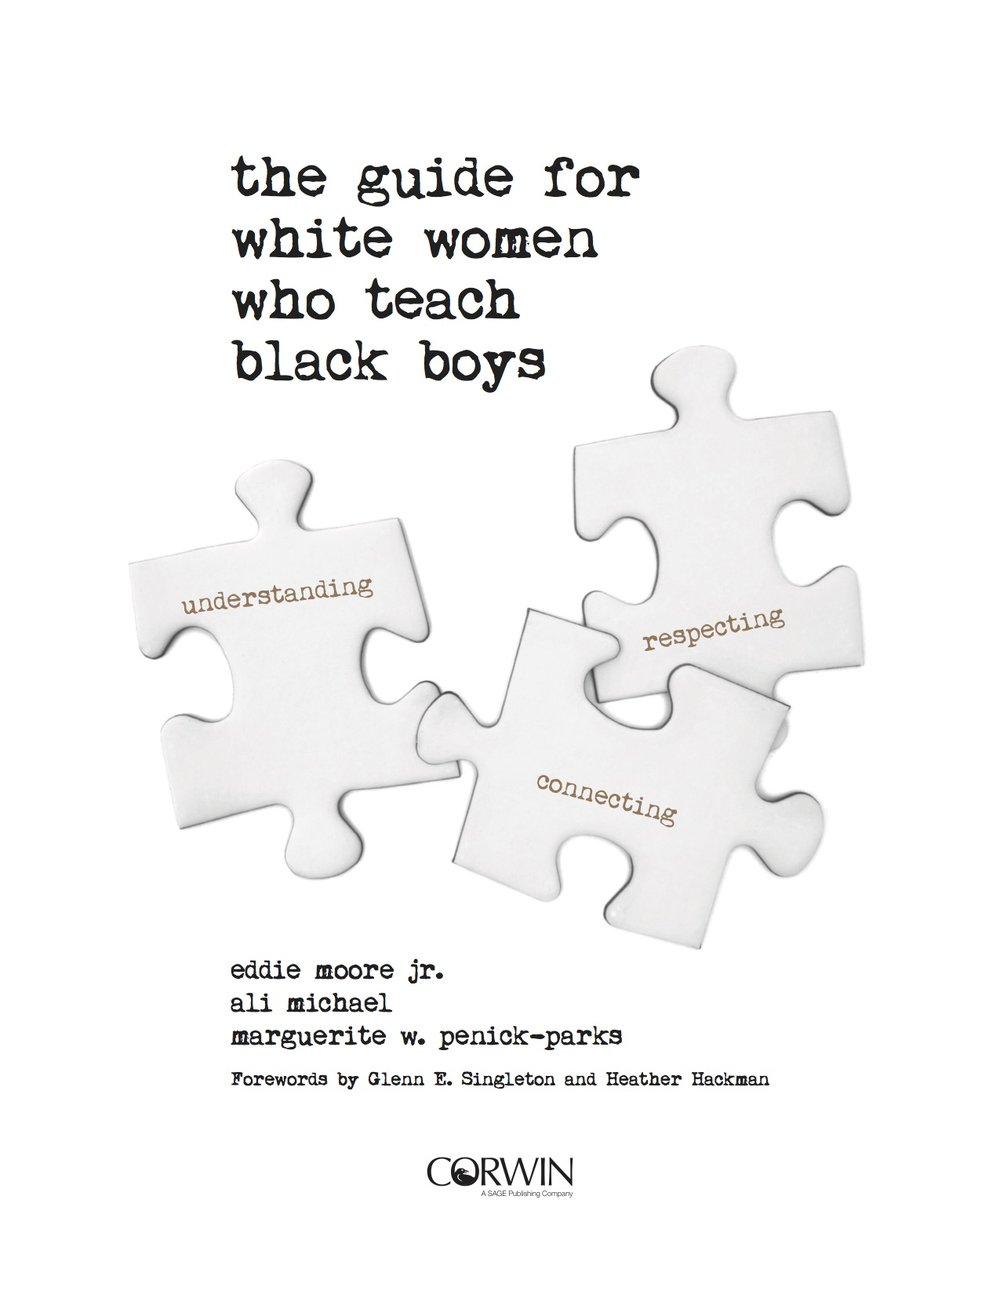 The Guide for White Women Who Teach Black Boys  - Eddie Moore Jr.Ali MichaelMarguerite W. Penick-Parks - University of Wisconsin, OshkoshForewords by Glenn E. Singleton and Heather HackmanPre-Publication price: $24.00**Includes a 20% everyday educator discount!Pre-Order your copy today!